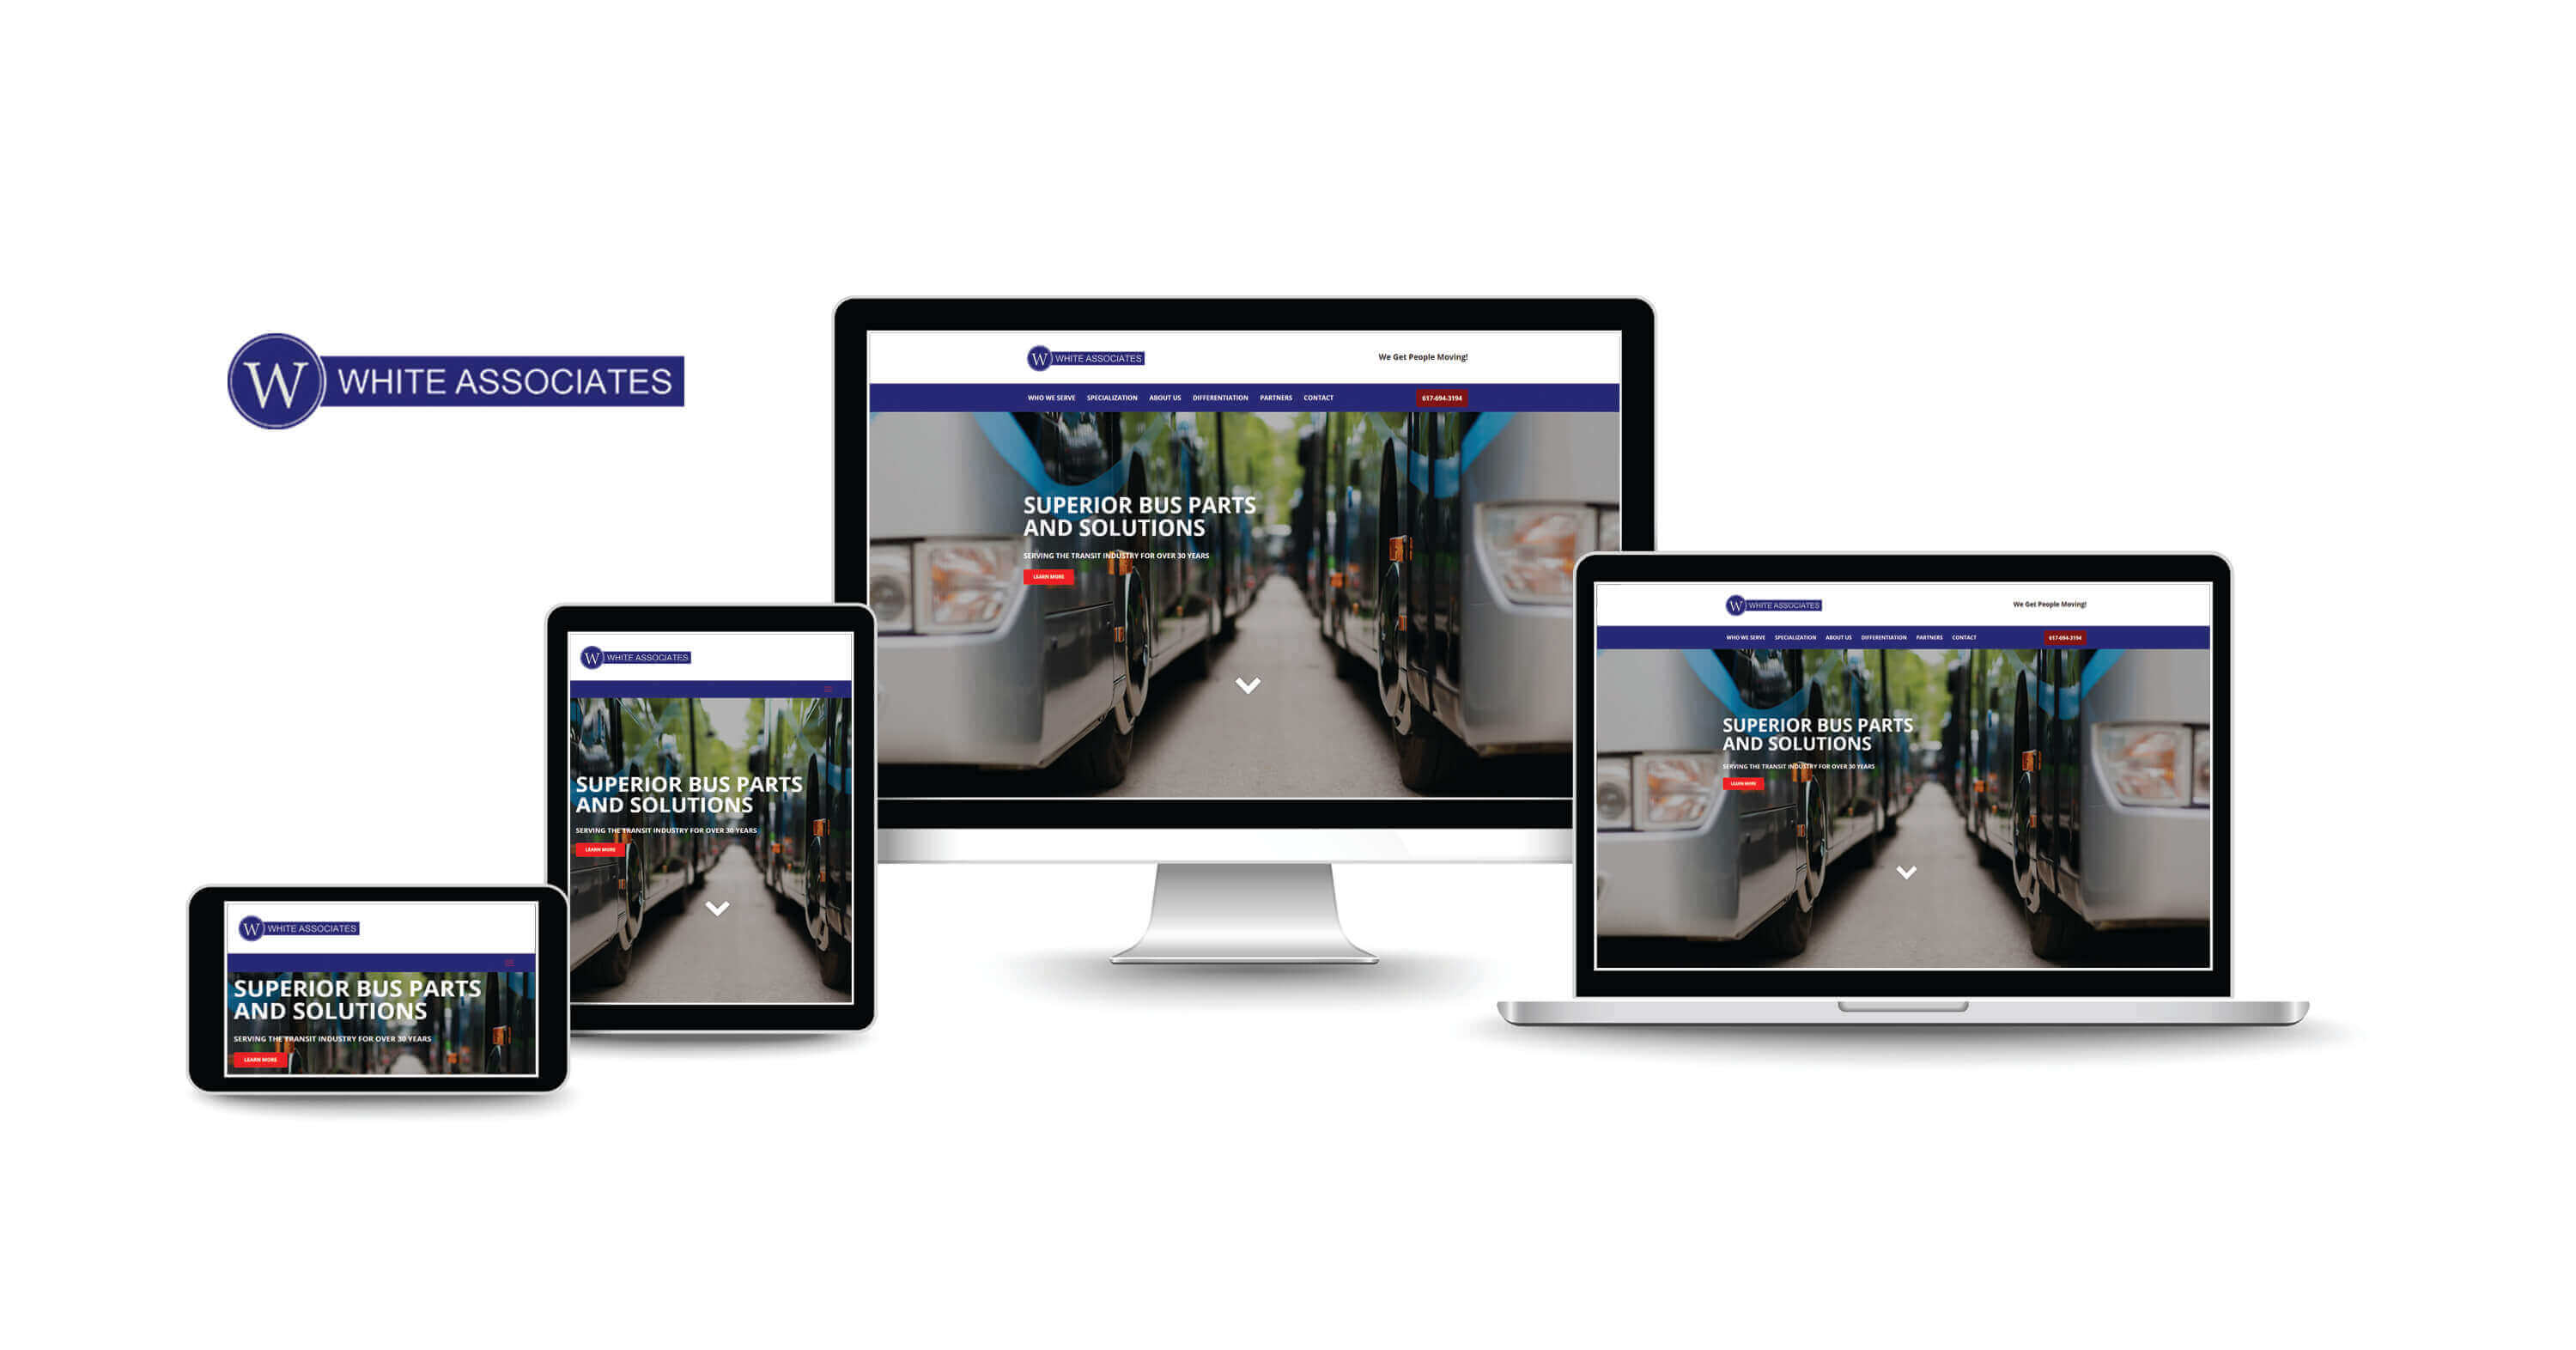 website design and SEO services for brake supply companies